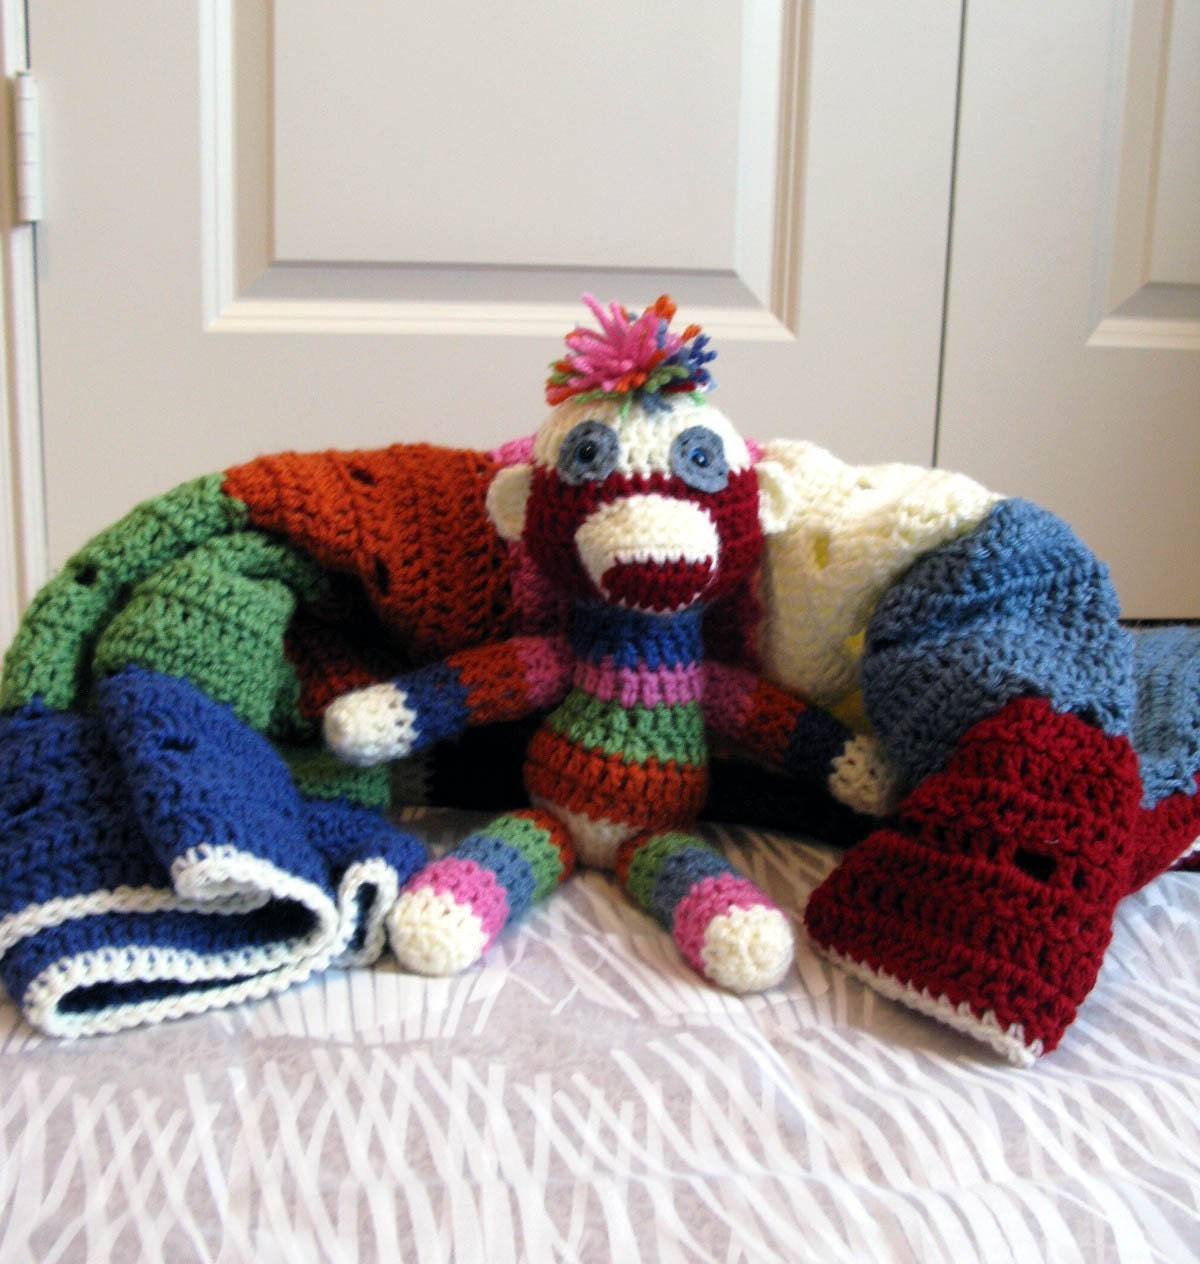 Crochet baby blanket with sock monkey by TheStrumpetsTentacle